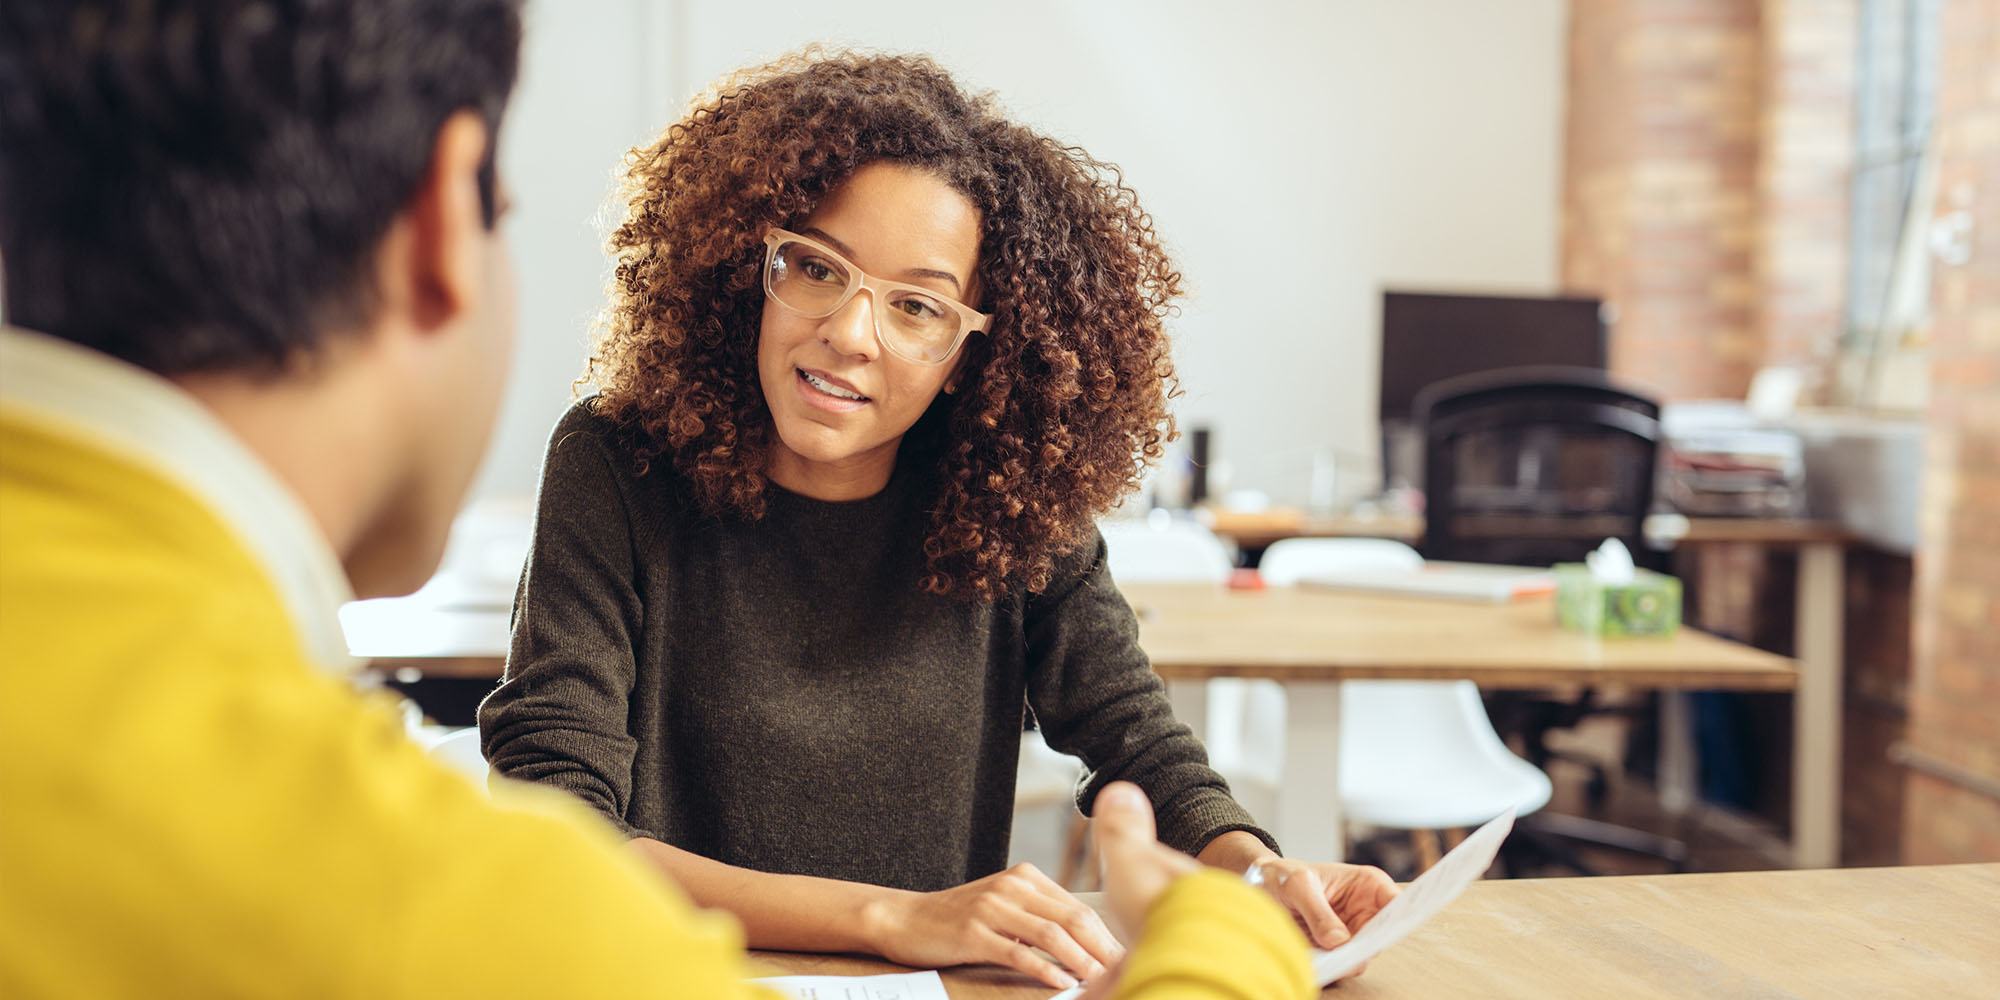 Don't sell yourself short: Tips for landing an ace job in tech